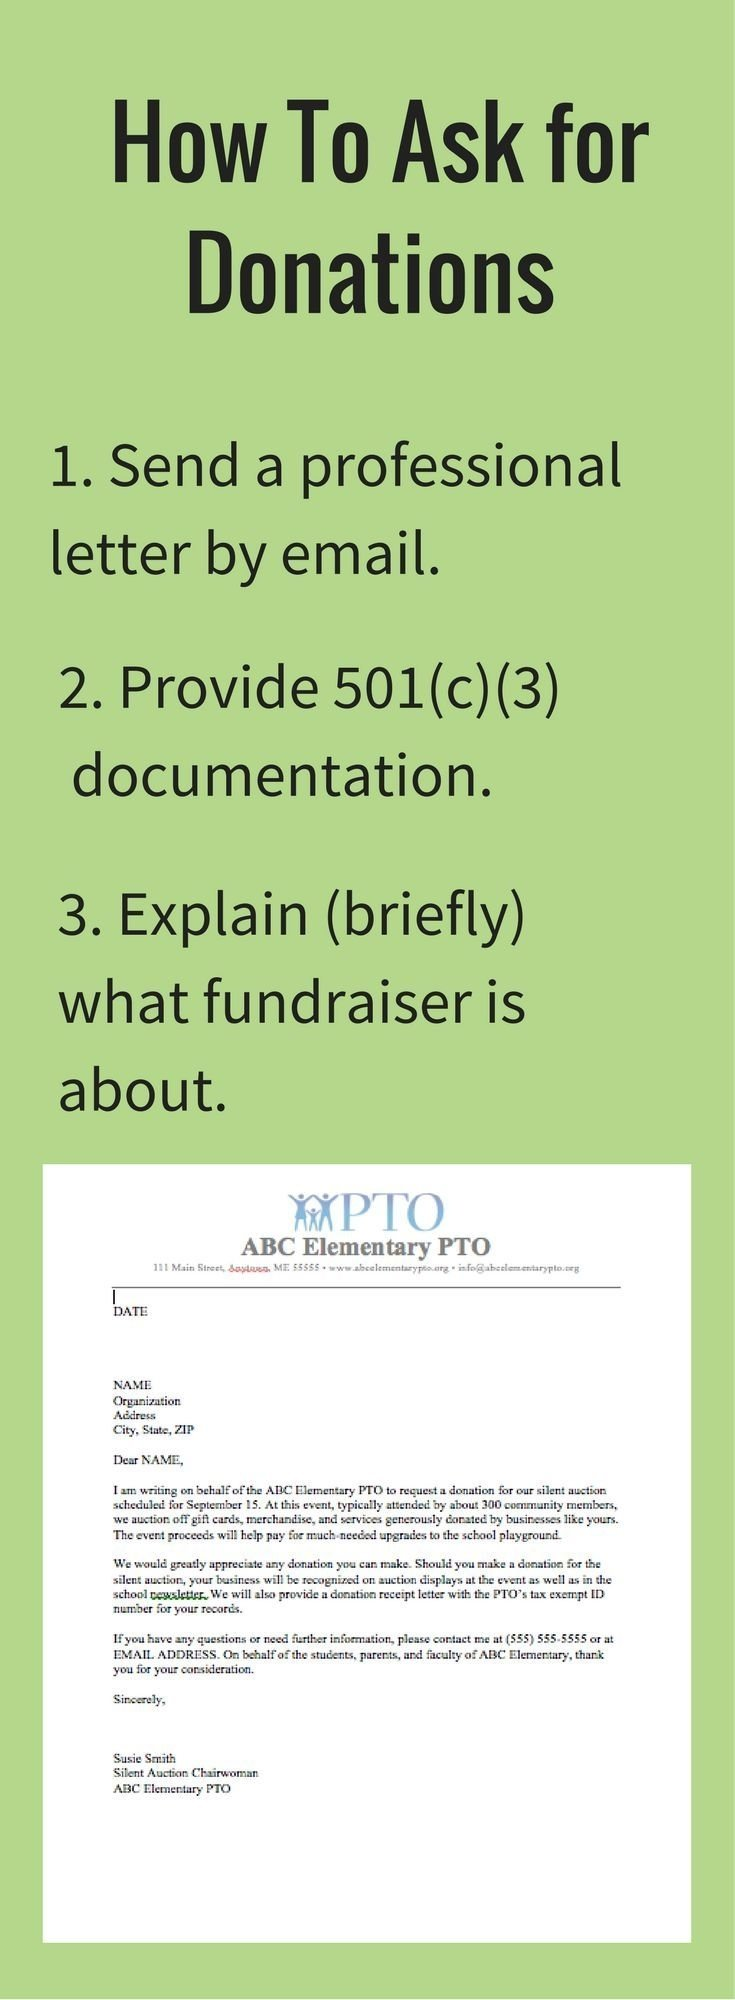 10 Fantastic What Are Good Fundraising Ideas 518 best fundraising ideas images on pinterest christmas